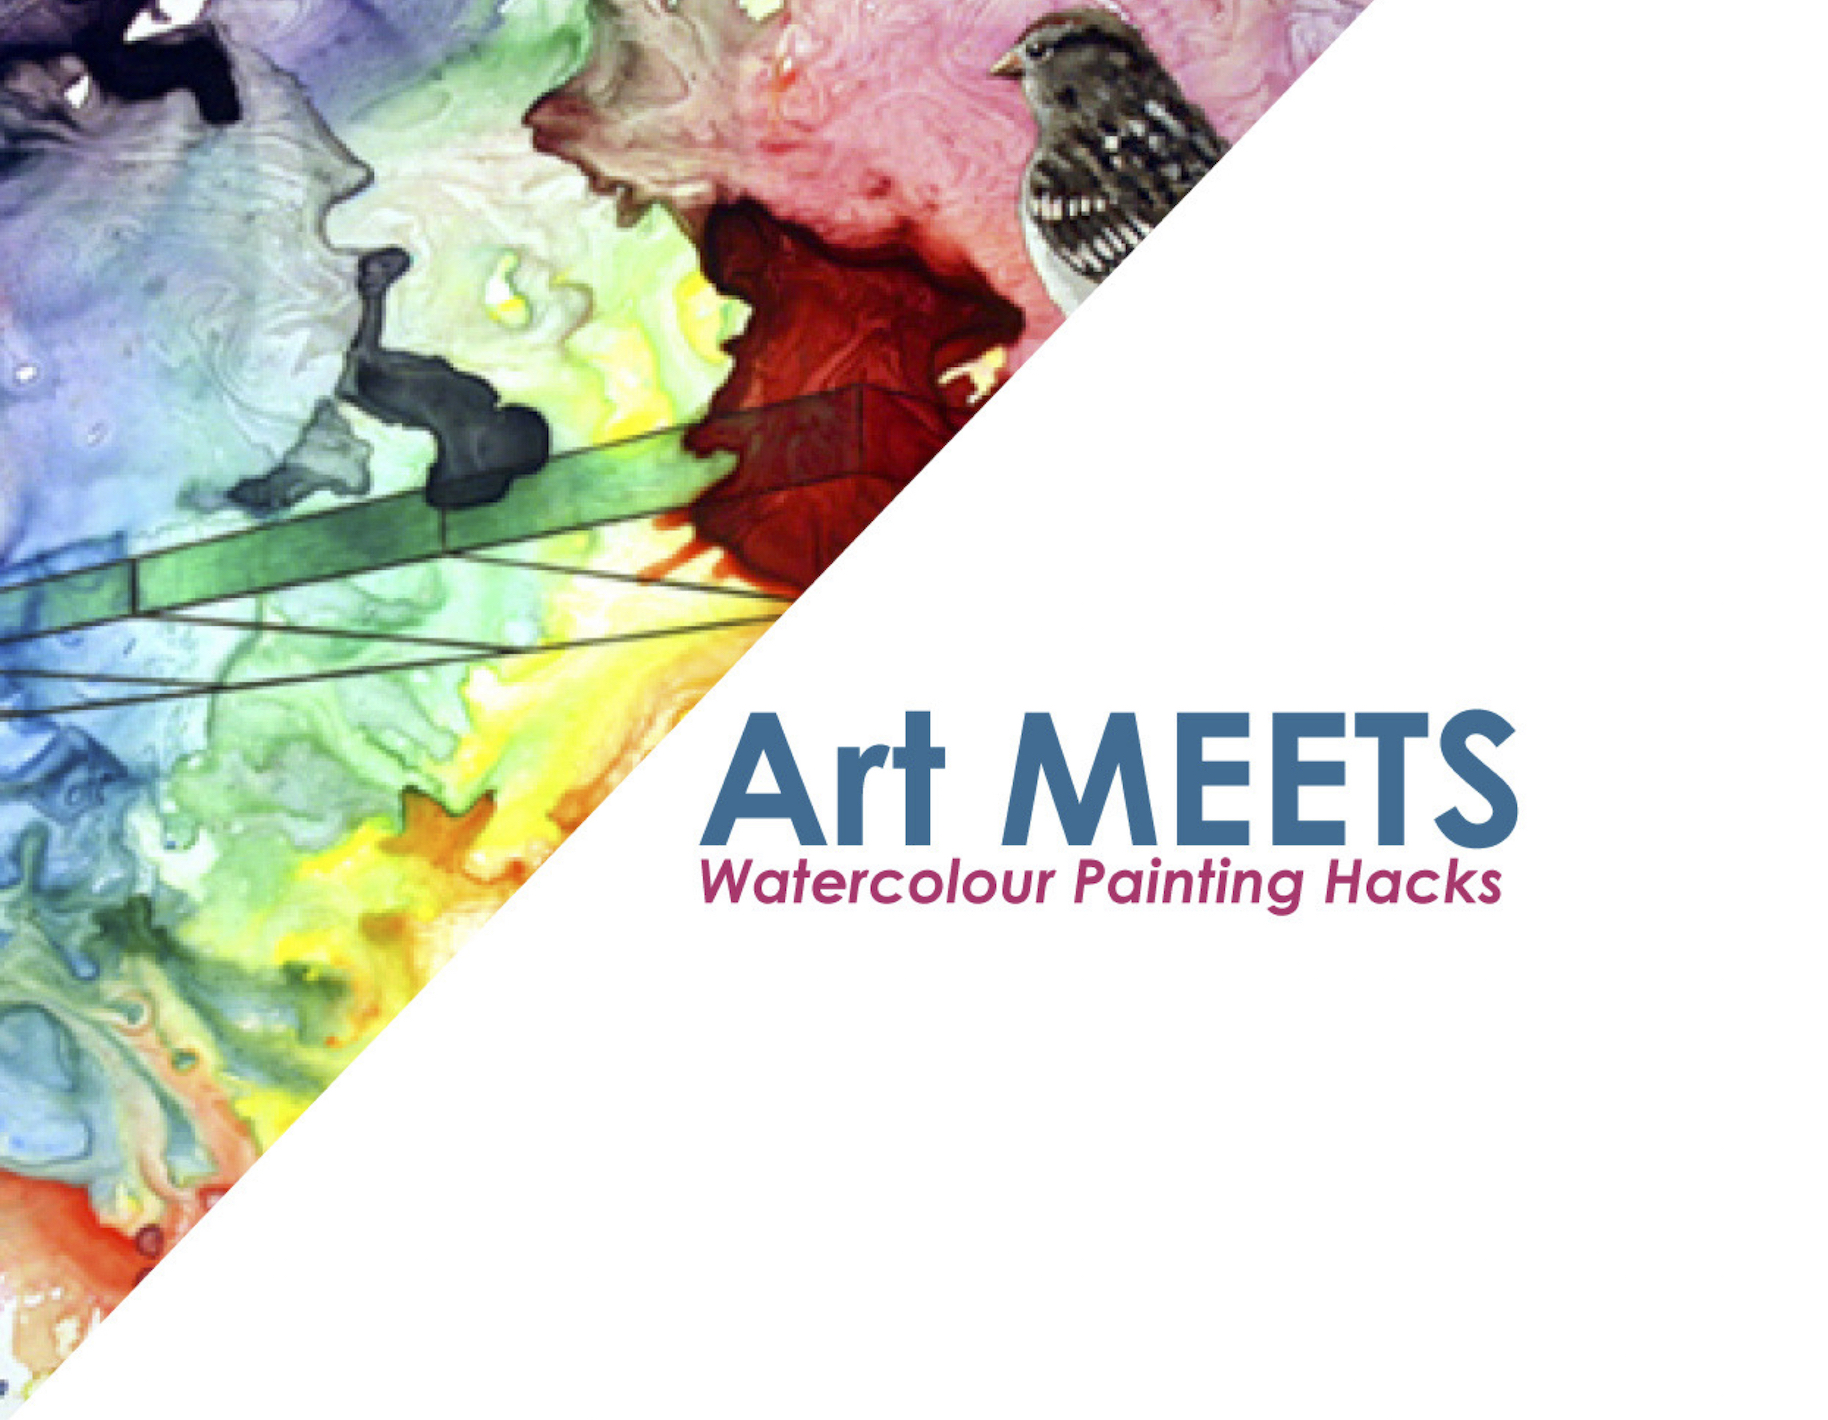 Art MEETS: Watercolour Painting Hacks